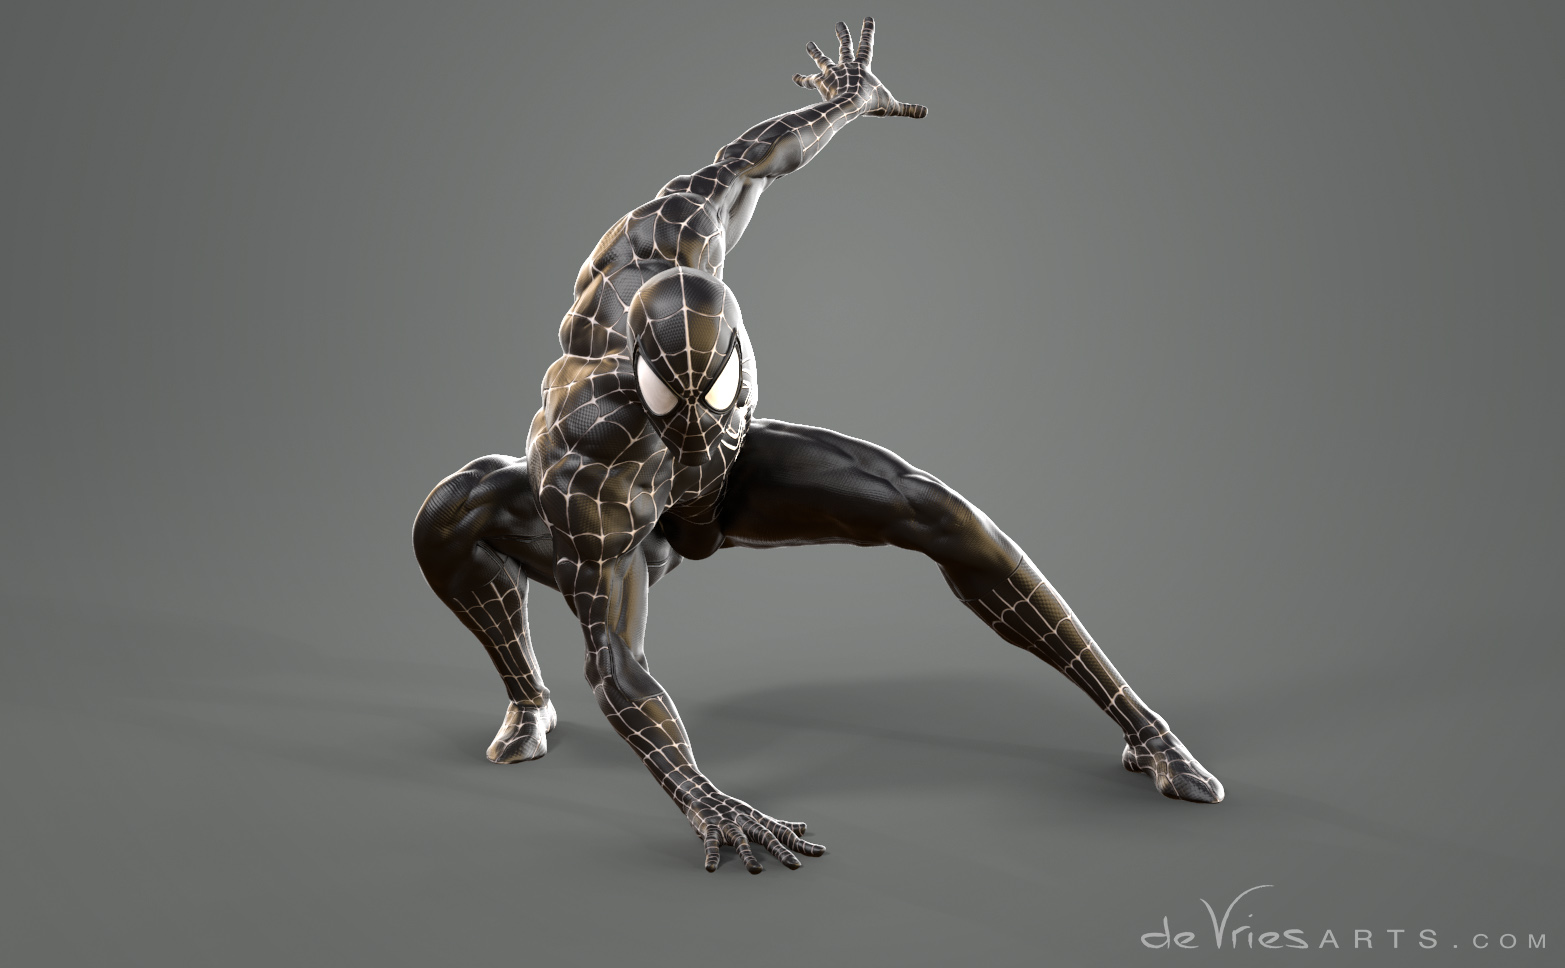 crawling_spiderman_ThijsDeVries_deVriesArts.jpg